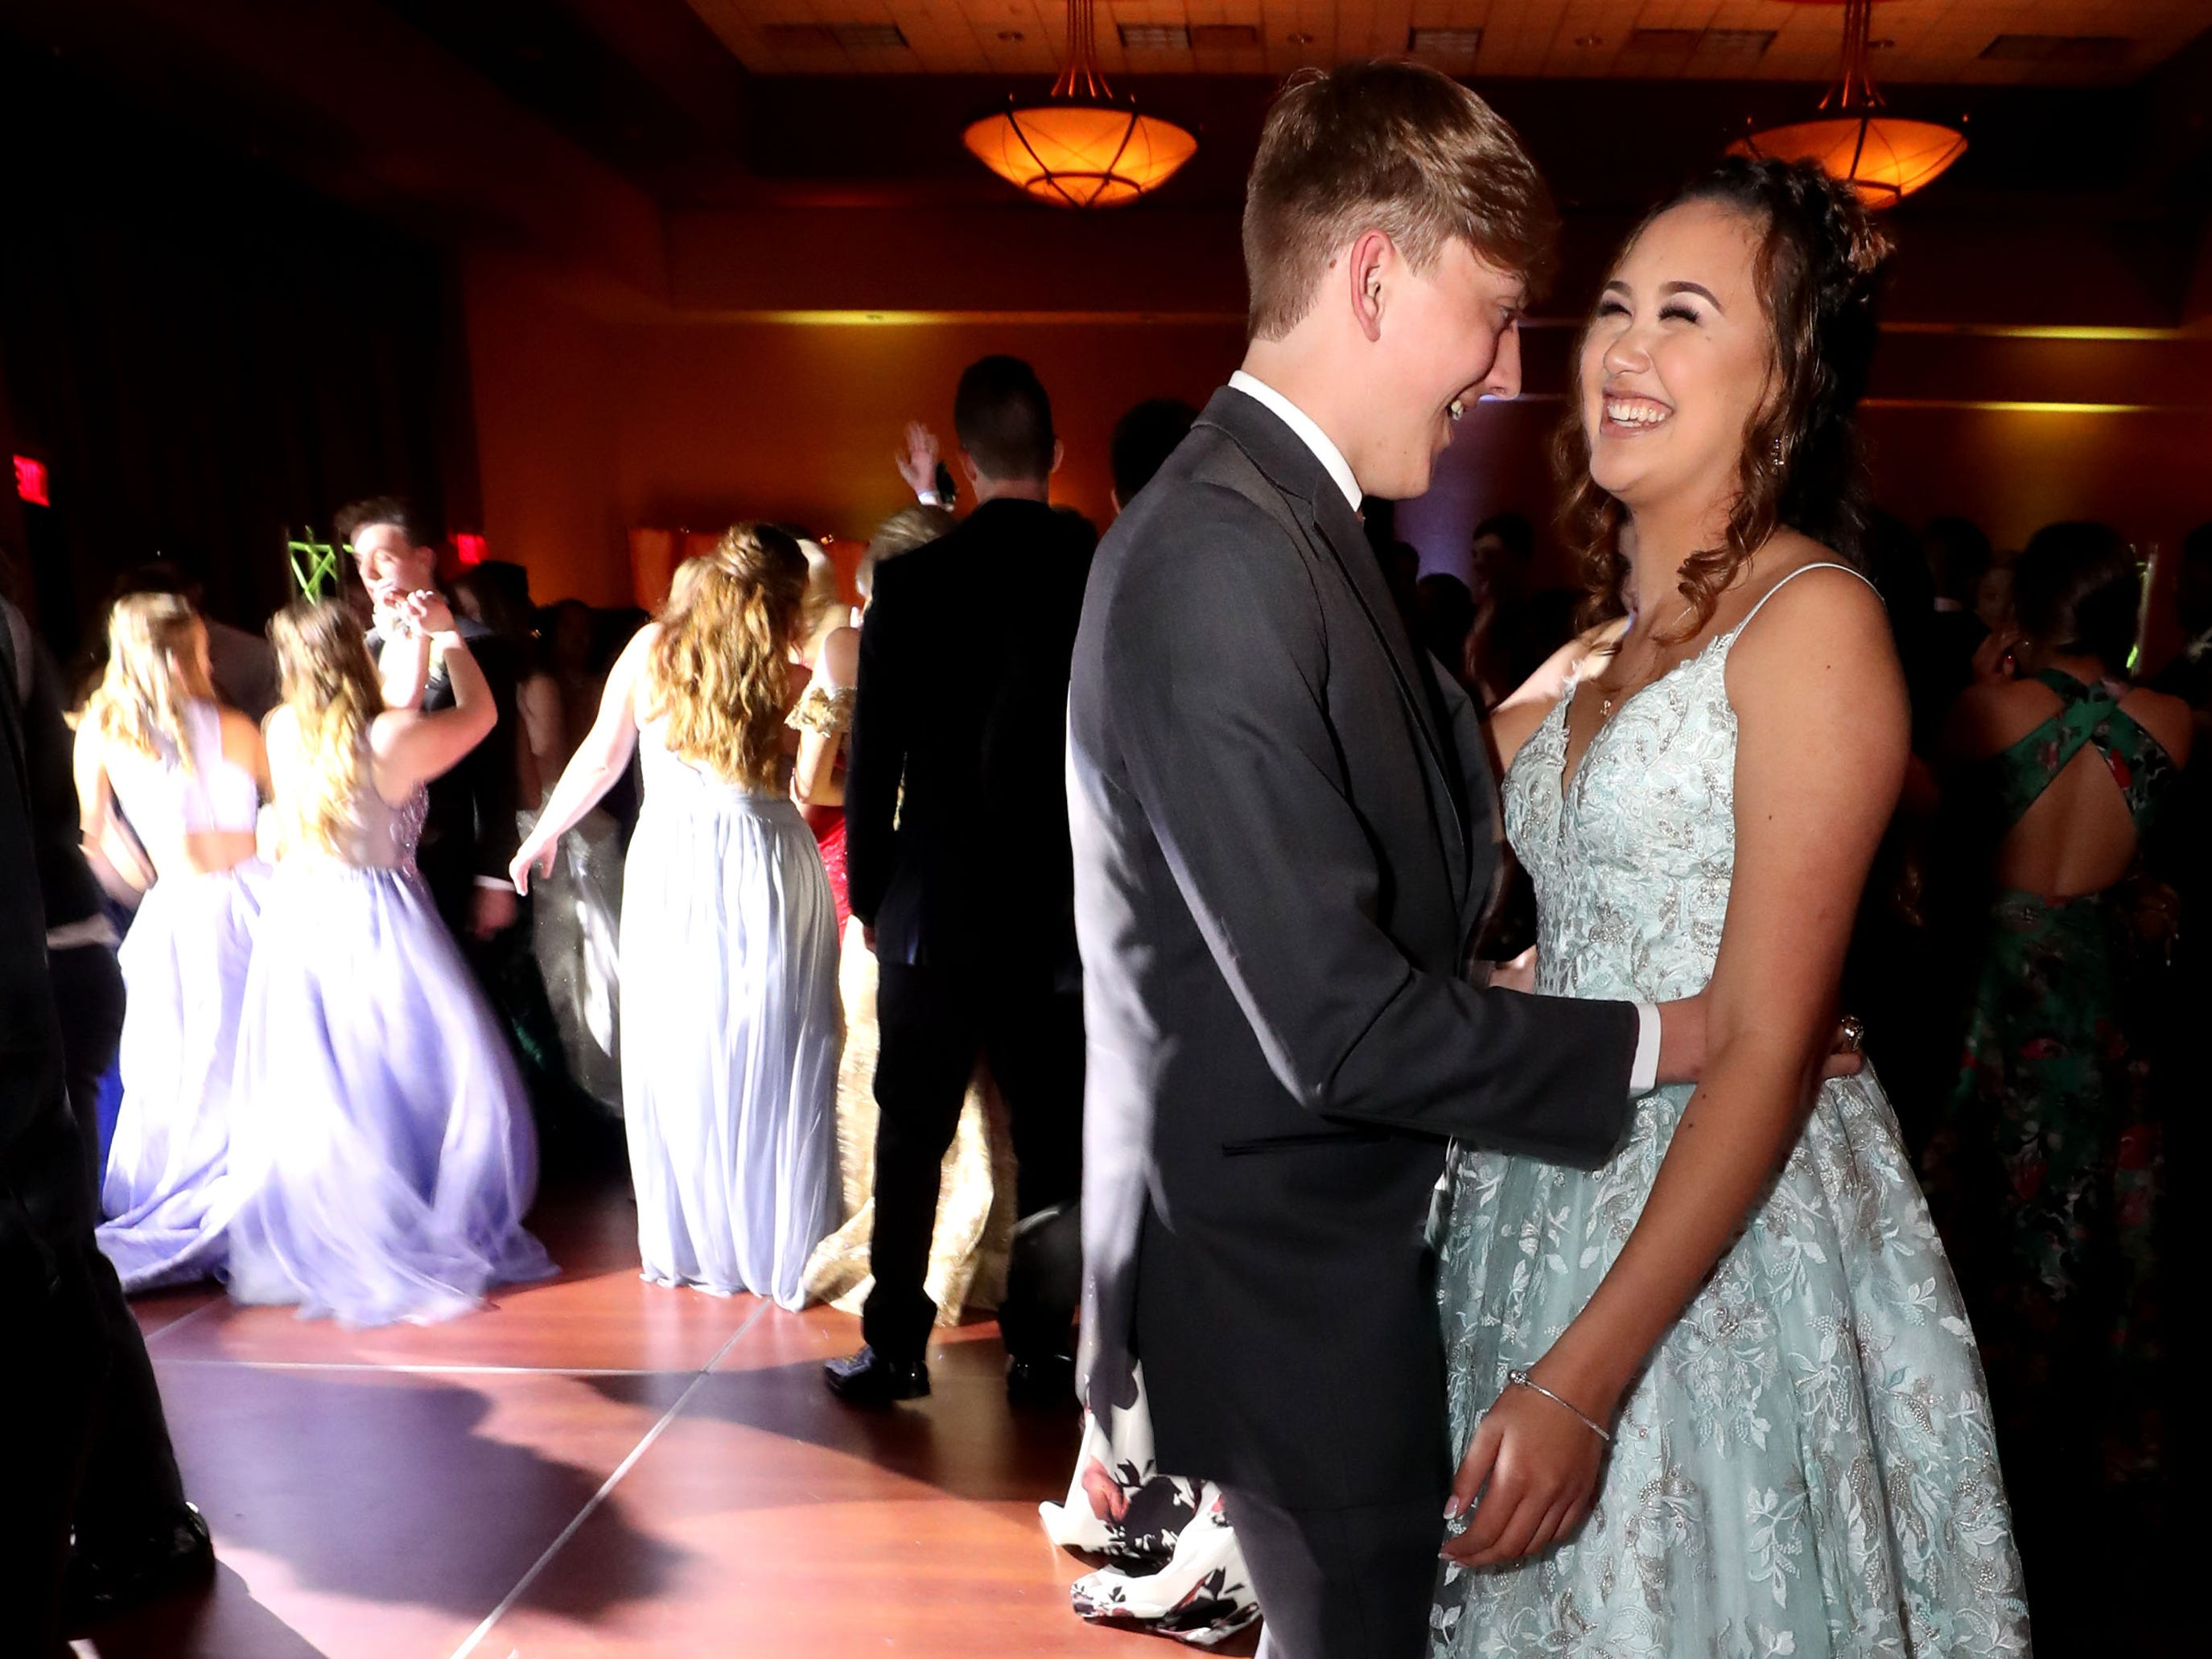 Ethan Hurts, left and Jasmine Huntsman, right dance at Eagleville's Prom held at Embassy Suites, in Murfreesboro on Thursday April 5, 2019.